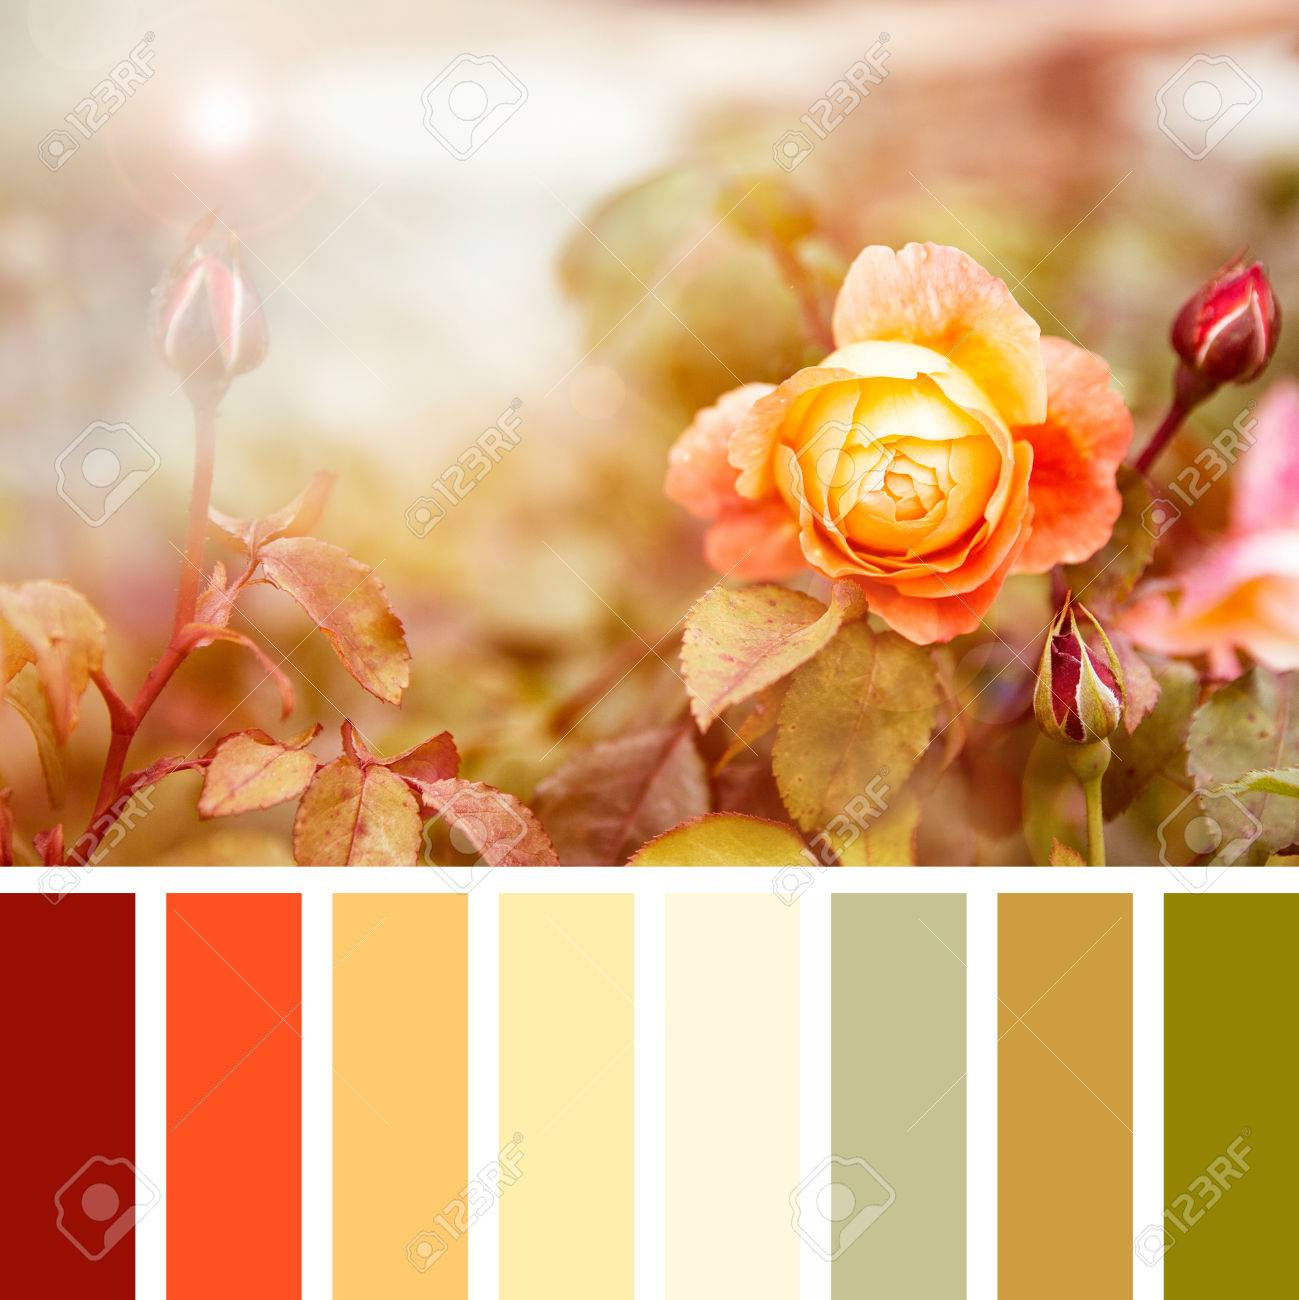 Yellow And Red Roses In Sunlight In A Colour Palette With